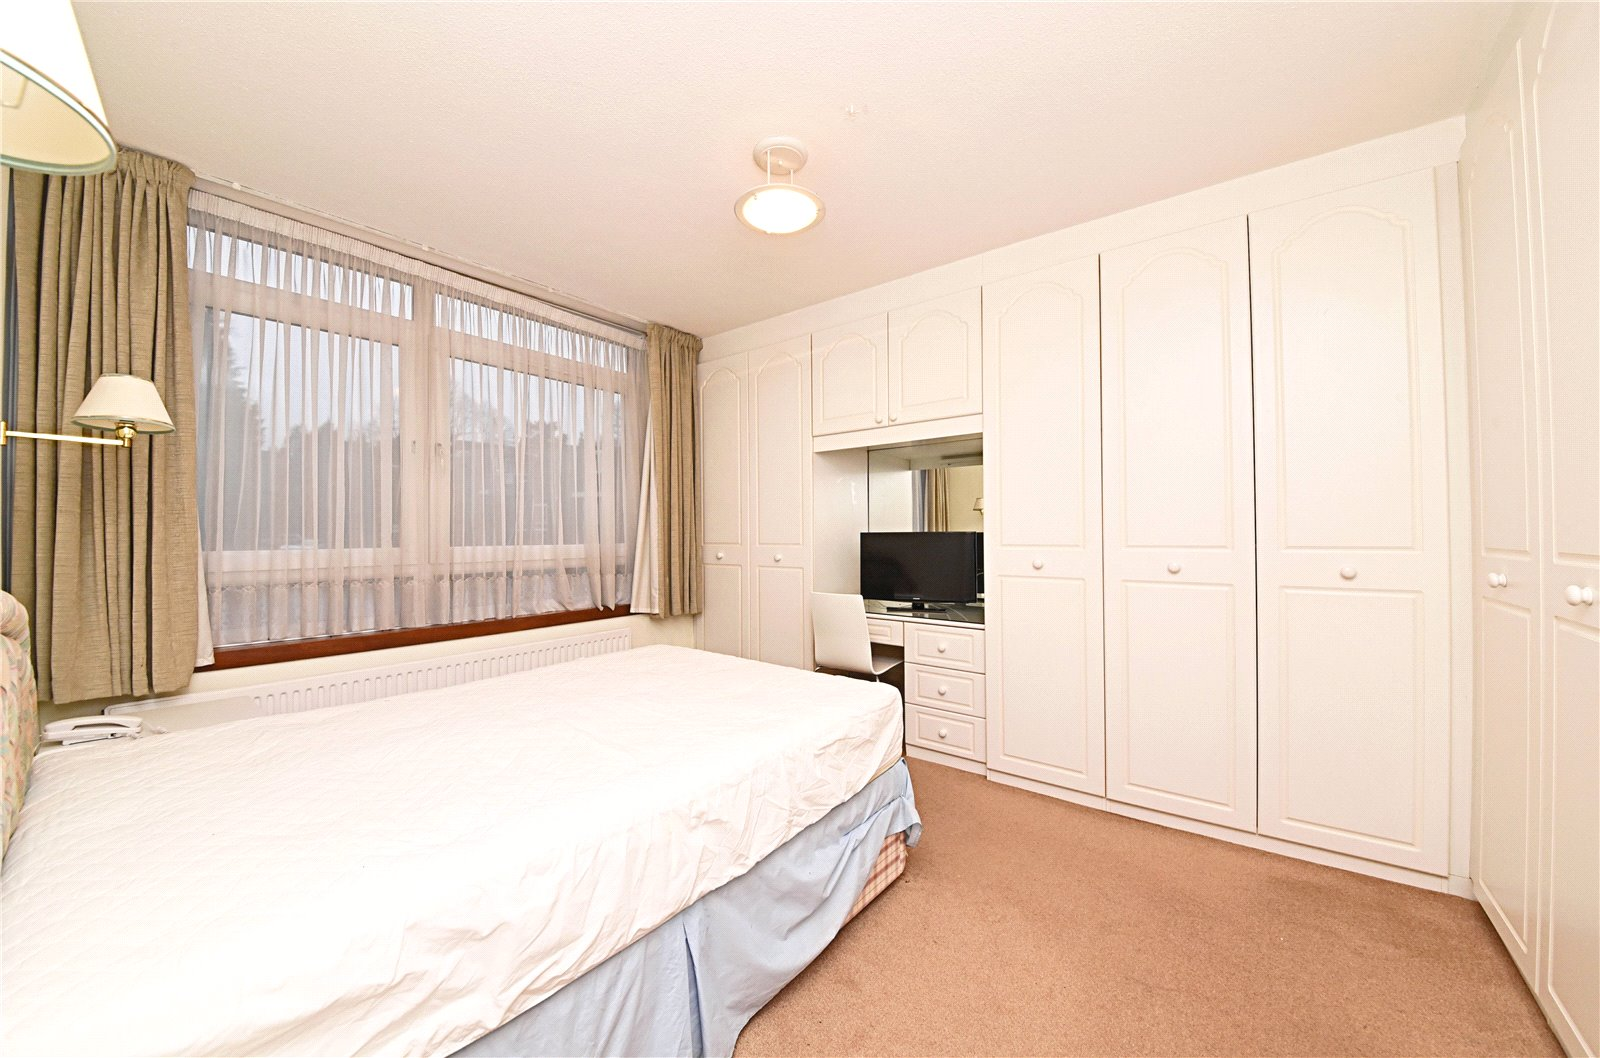 2 bed apartment for sale in Hendon, NW4 1RB 2